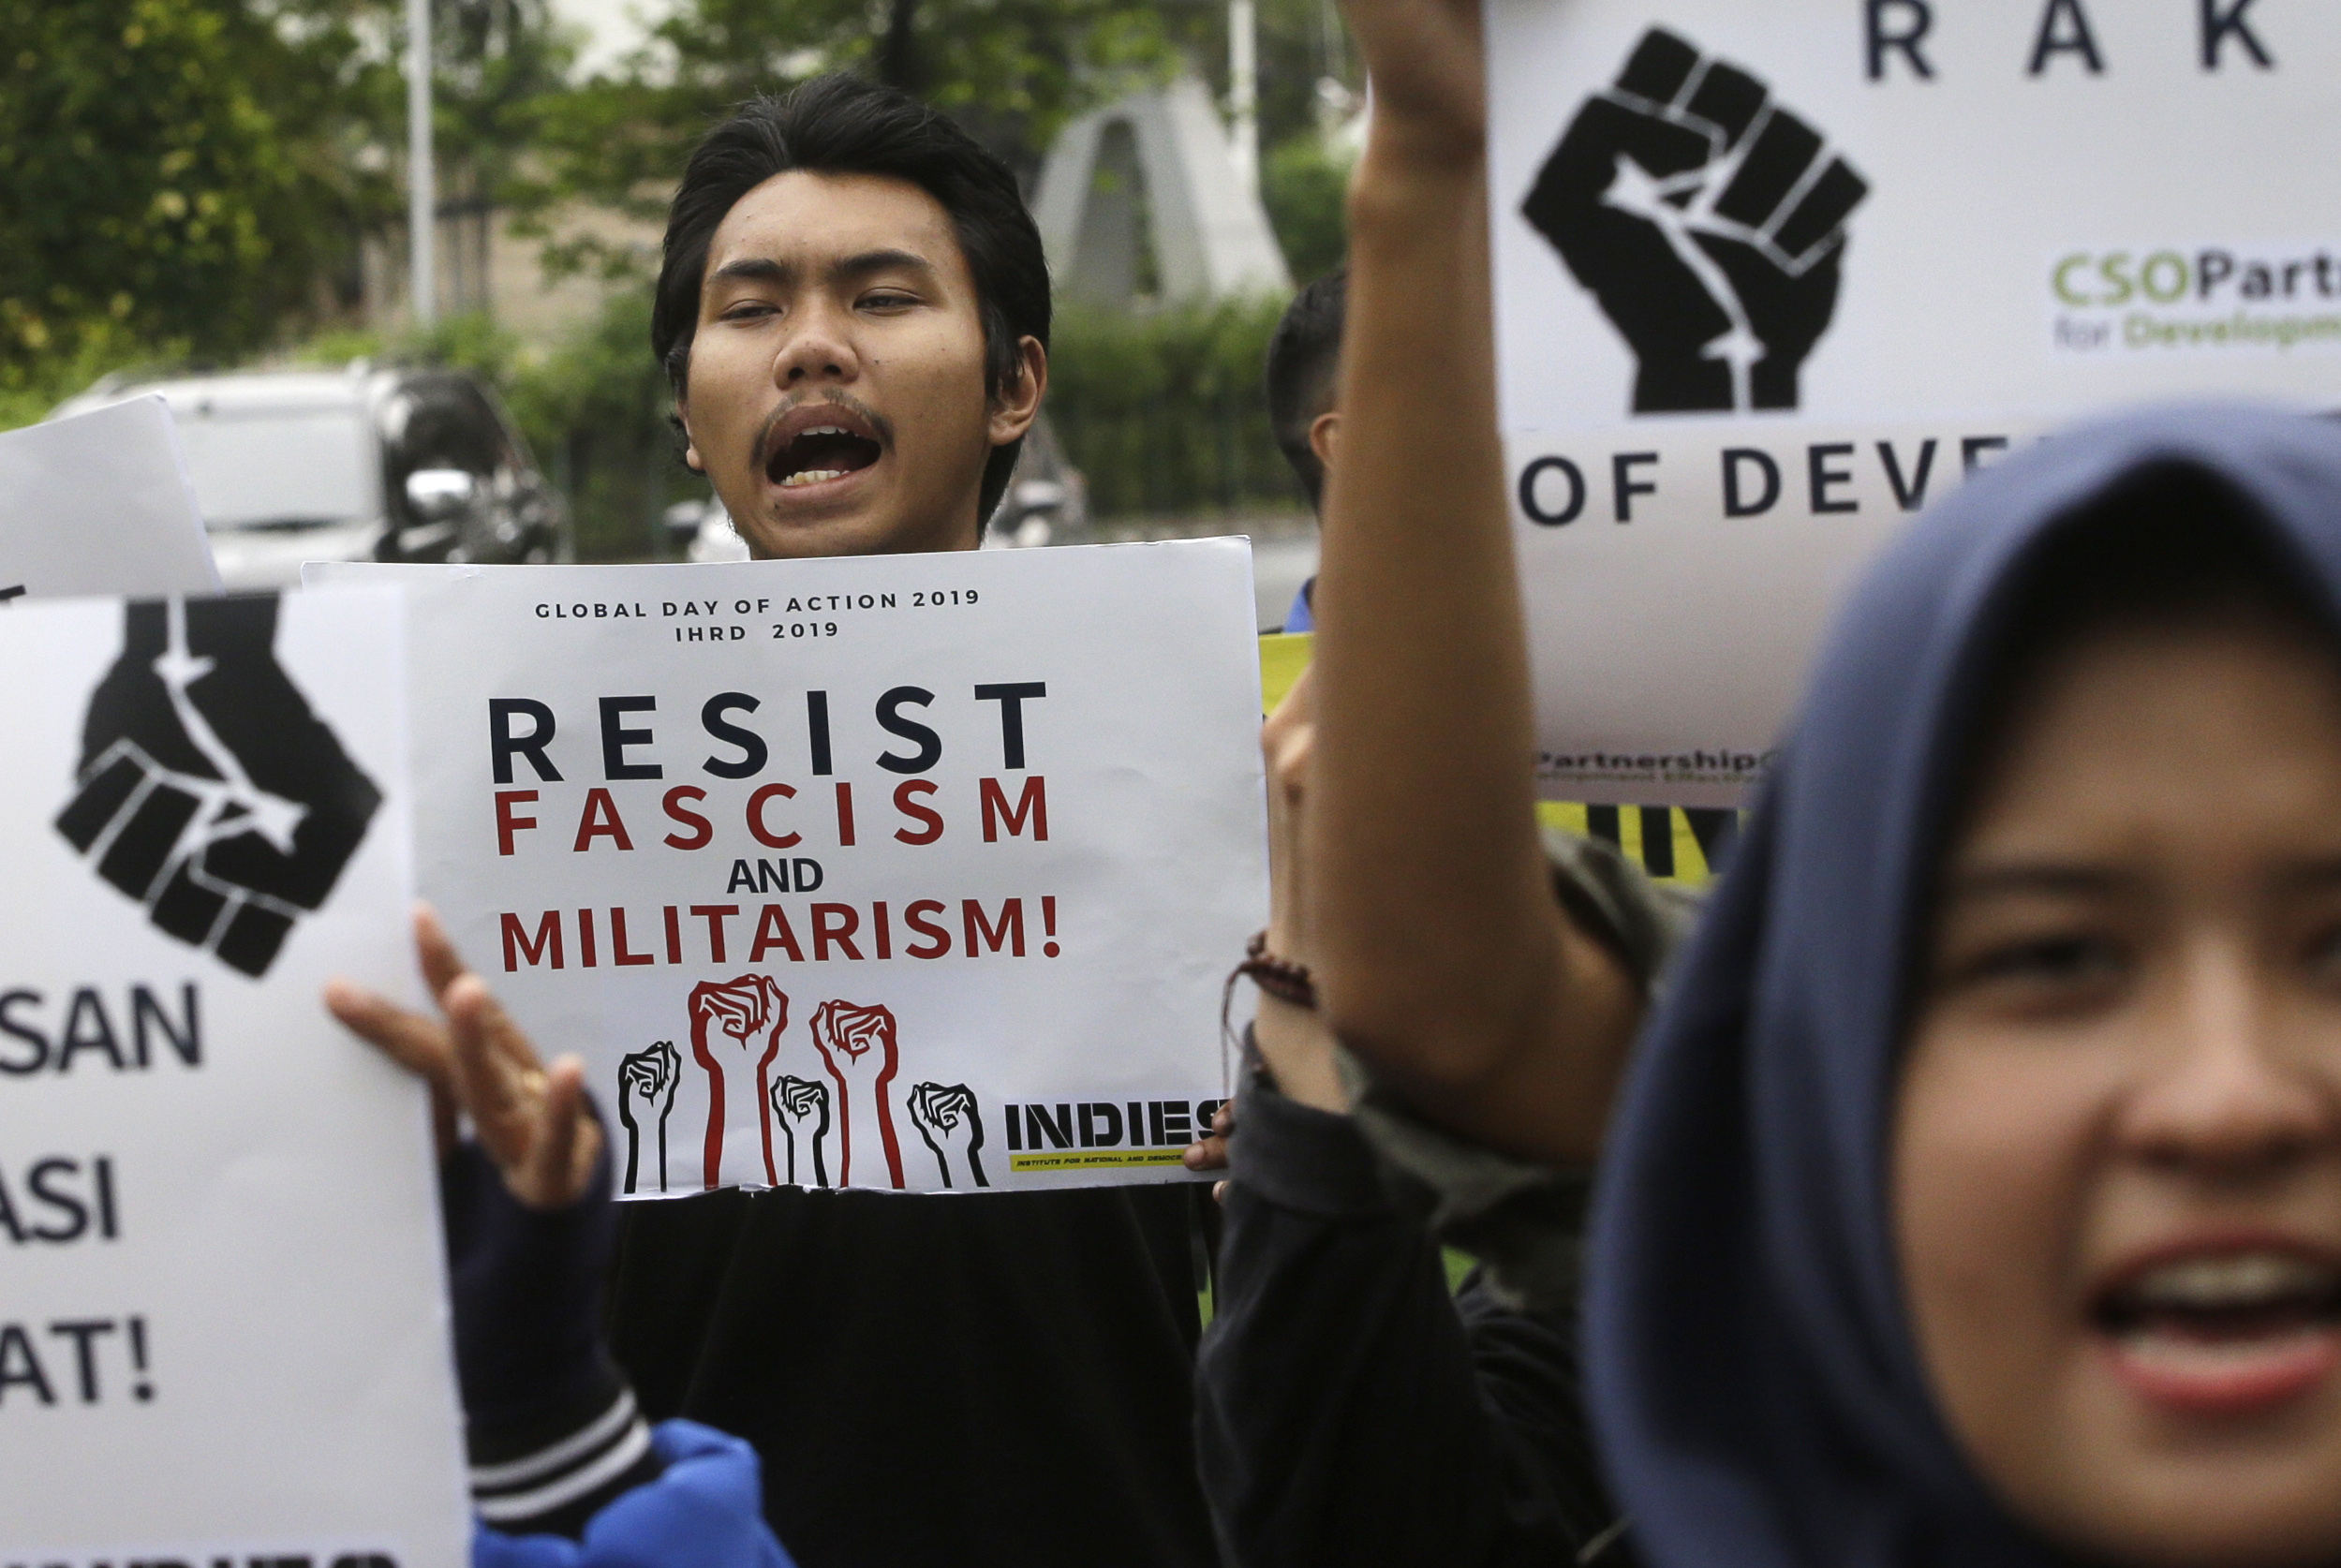 Activists shout slogans during rally to mark the Human Rights Day outside U.S. embassy in Jakarta, Indonesia, Tuesday, Dec. 10, 2019. Rights activists marched in Indonesia's capital Tuesday, calling on the government of the world's most populous Muslim and third largest democracy to protect and respect human rights.(AP Photo/Achmad Ibrahim)